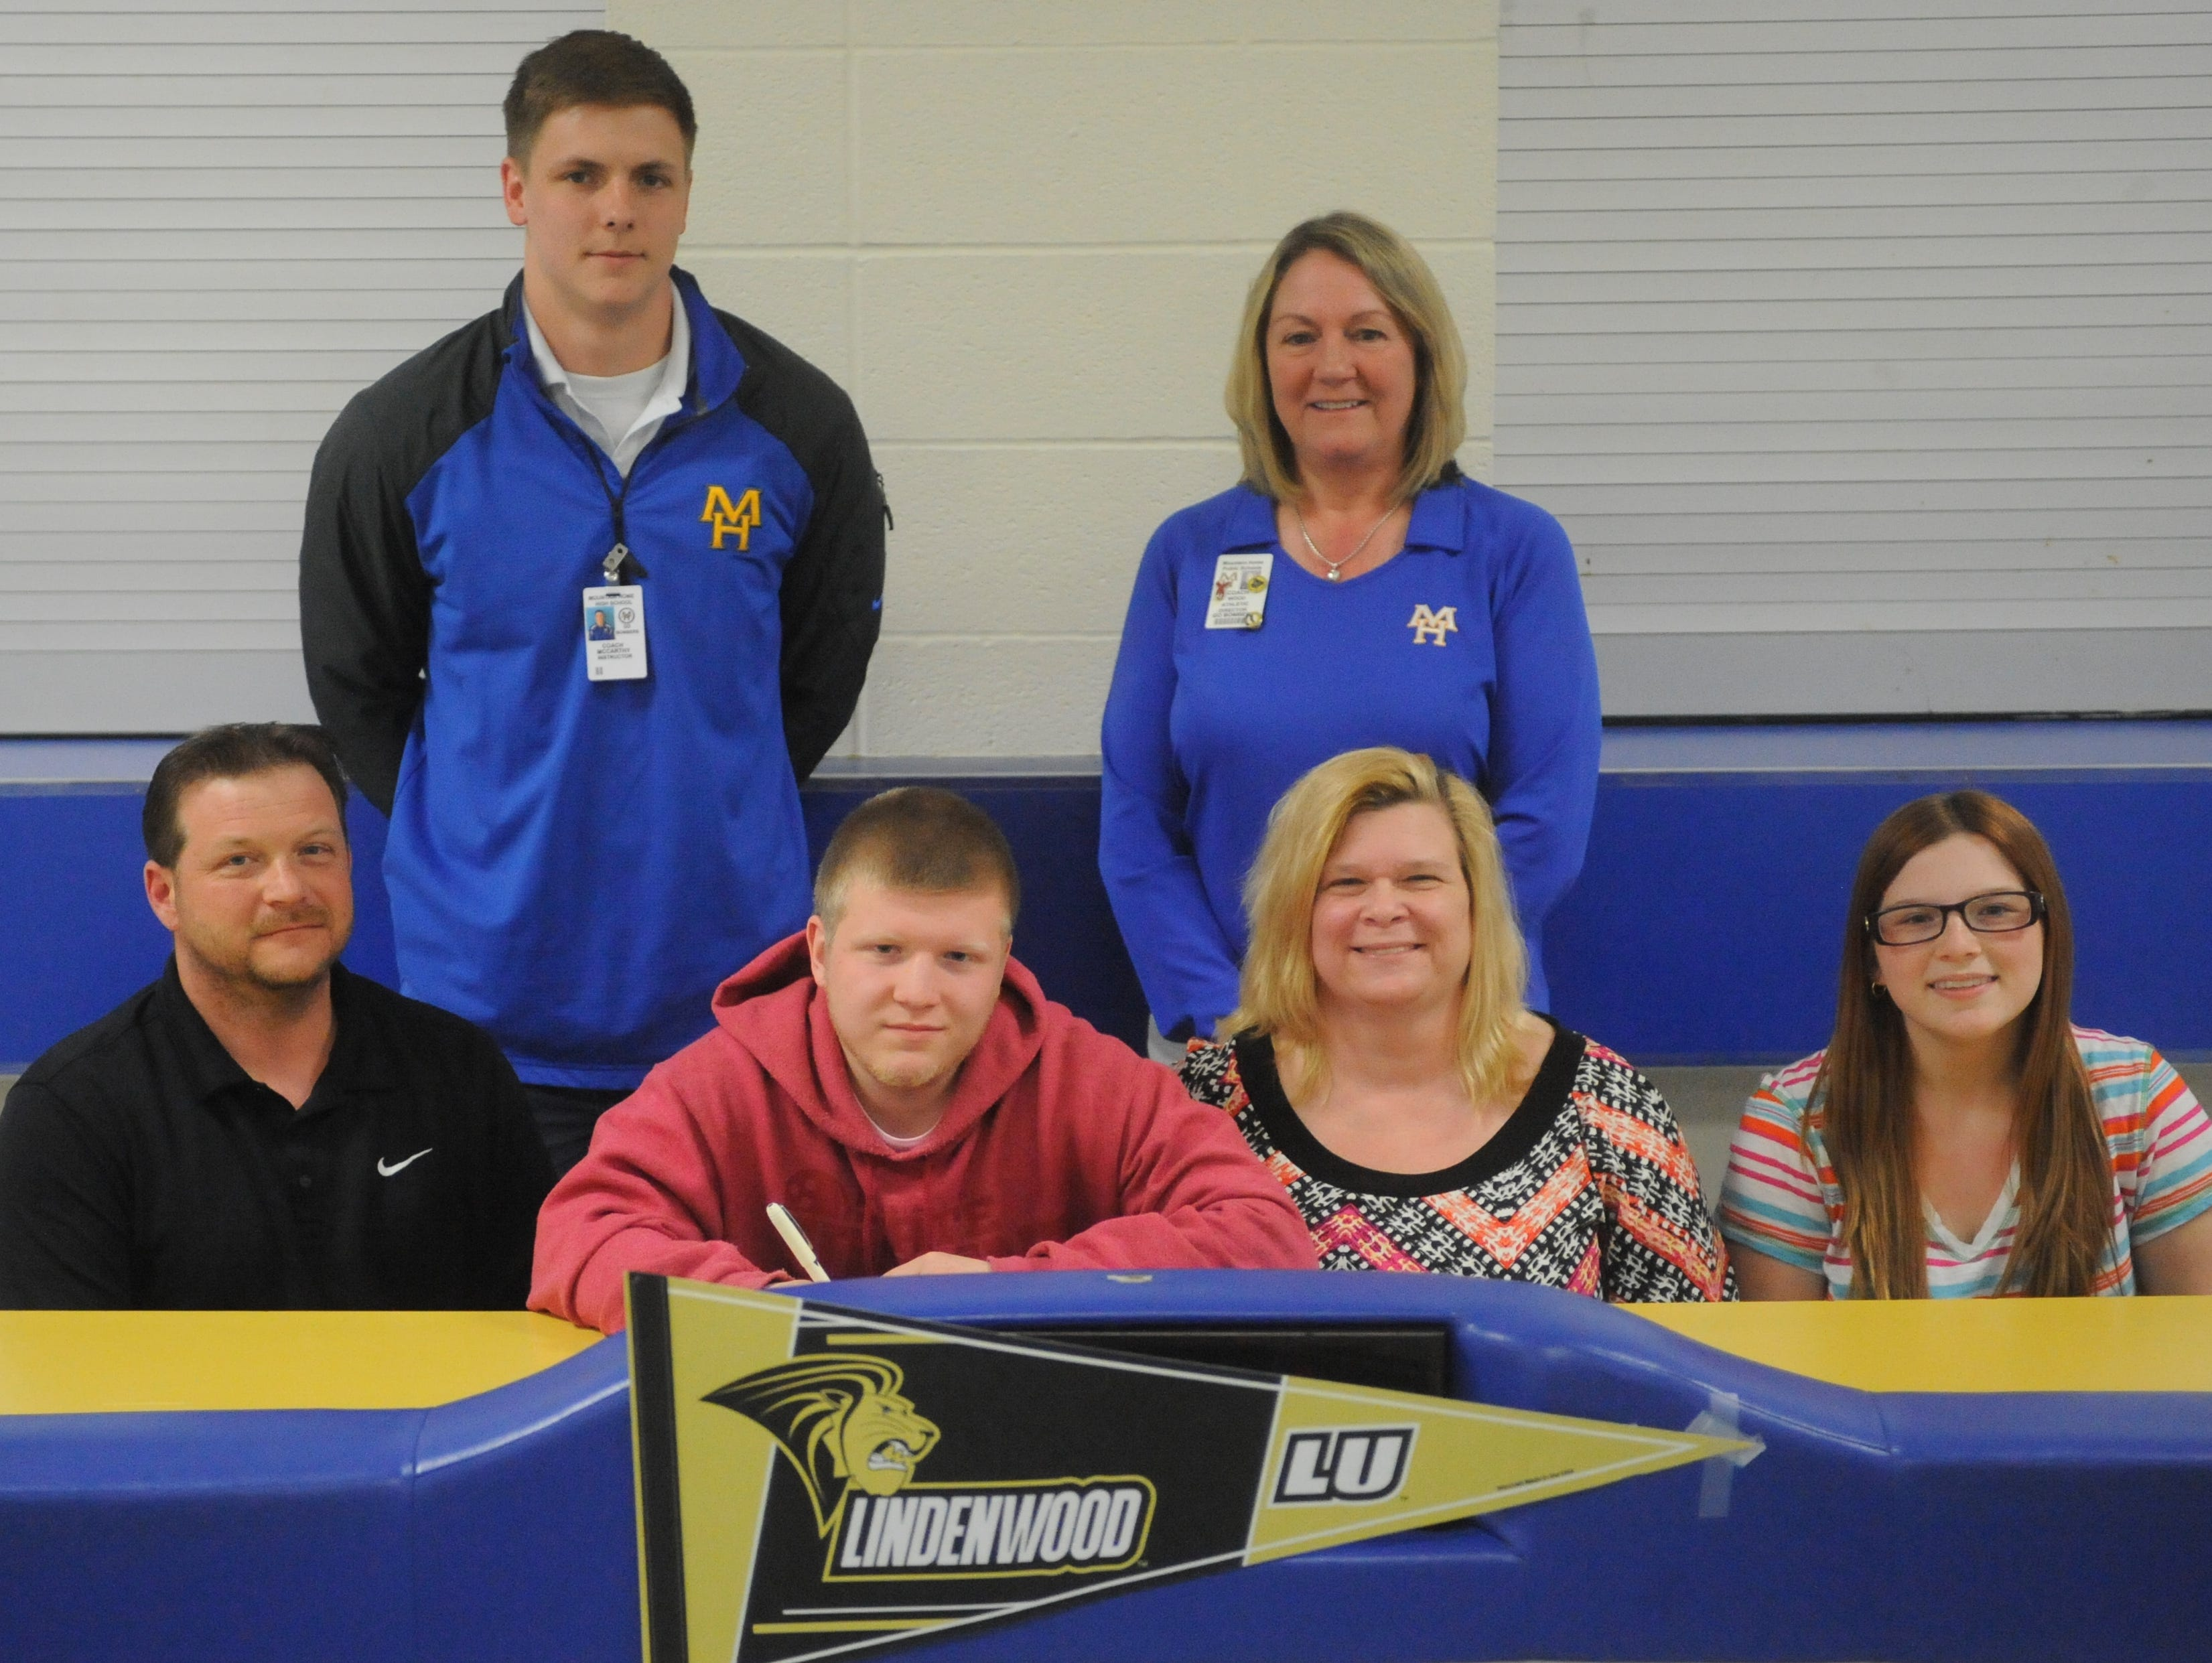 Mountain Home's Troy Kill signed a National Letter of Intent on Monday to bowl at Lindenwood University at St. Charles, Mo. Shown at the signing ceremony are: first row, from left, Kill's father, John Kill; Kill; Kill's mother, Tricia Kill; Kill's sister, Caitlyn Kill; second row, Mountain Home High School bowling coach Chaseton McCarthy; and Mountain Home High School athletics director Janet Wood.